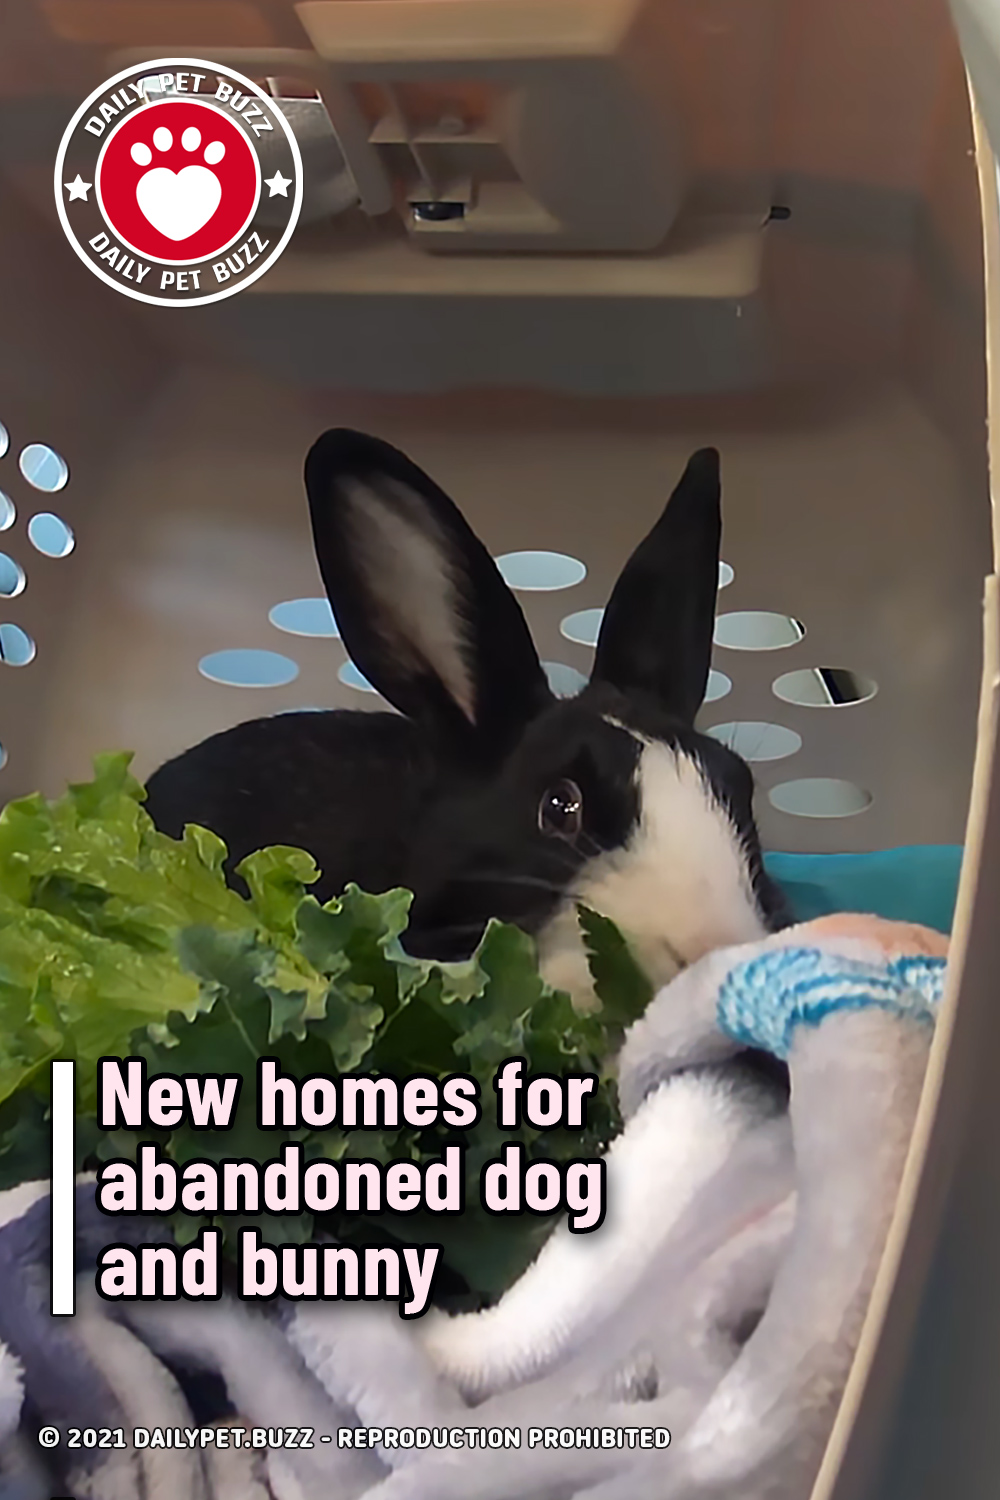 New homes for abandoned dog and bunny